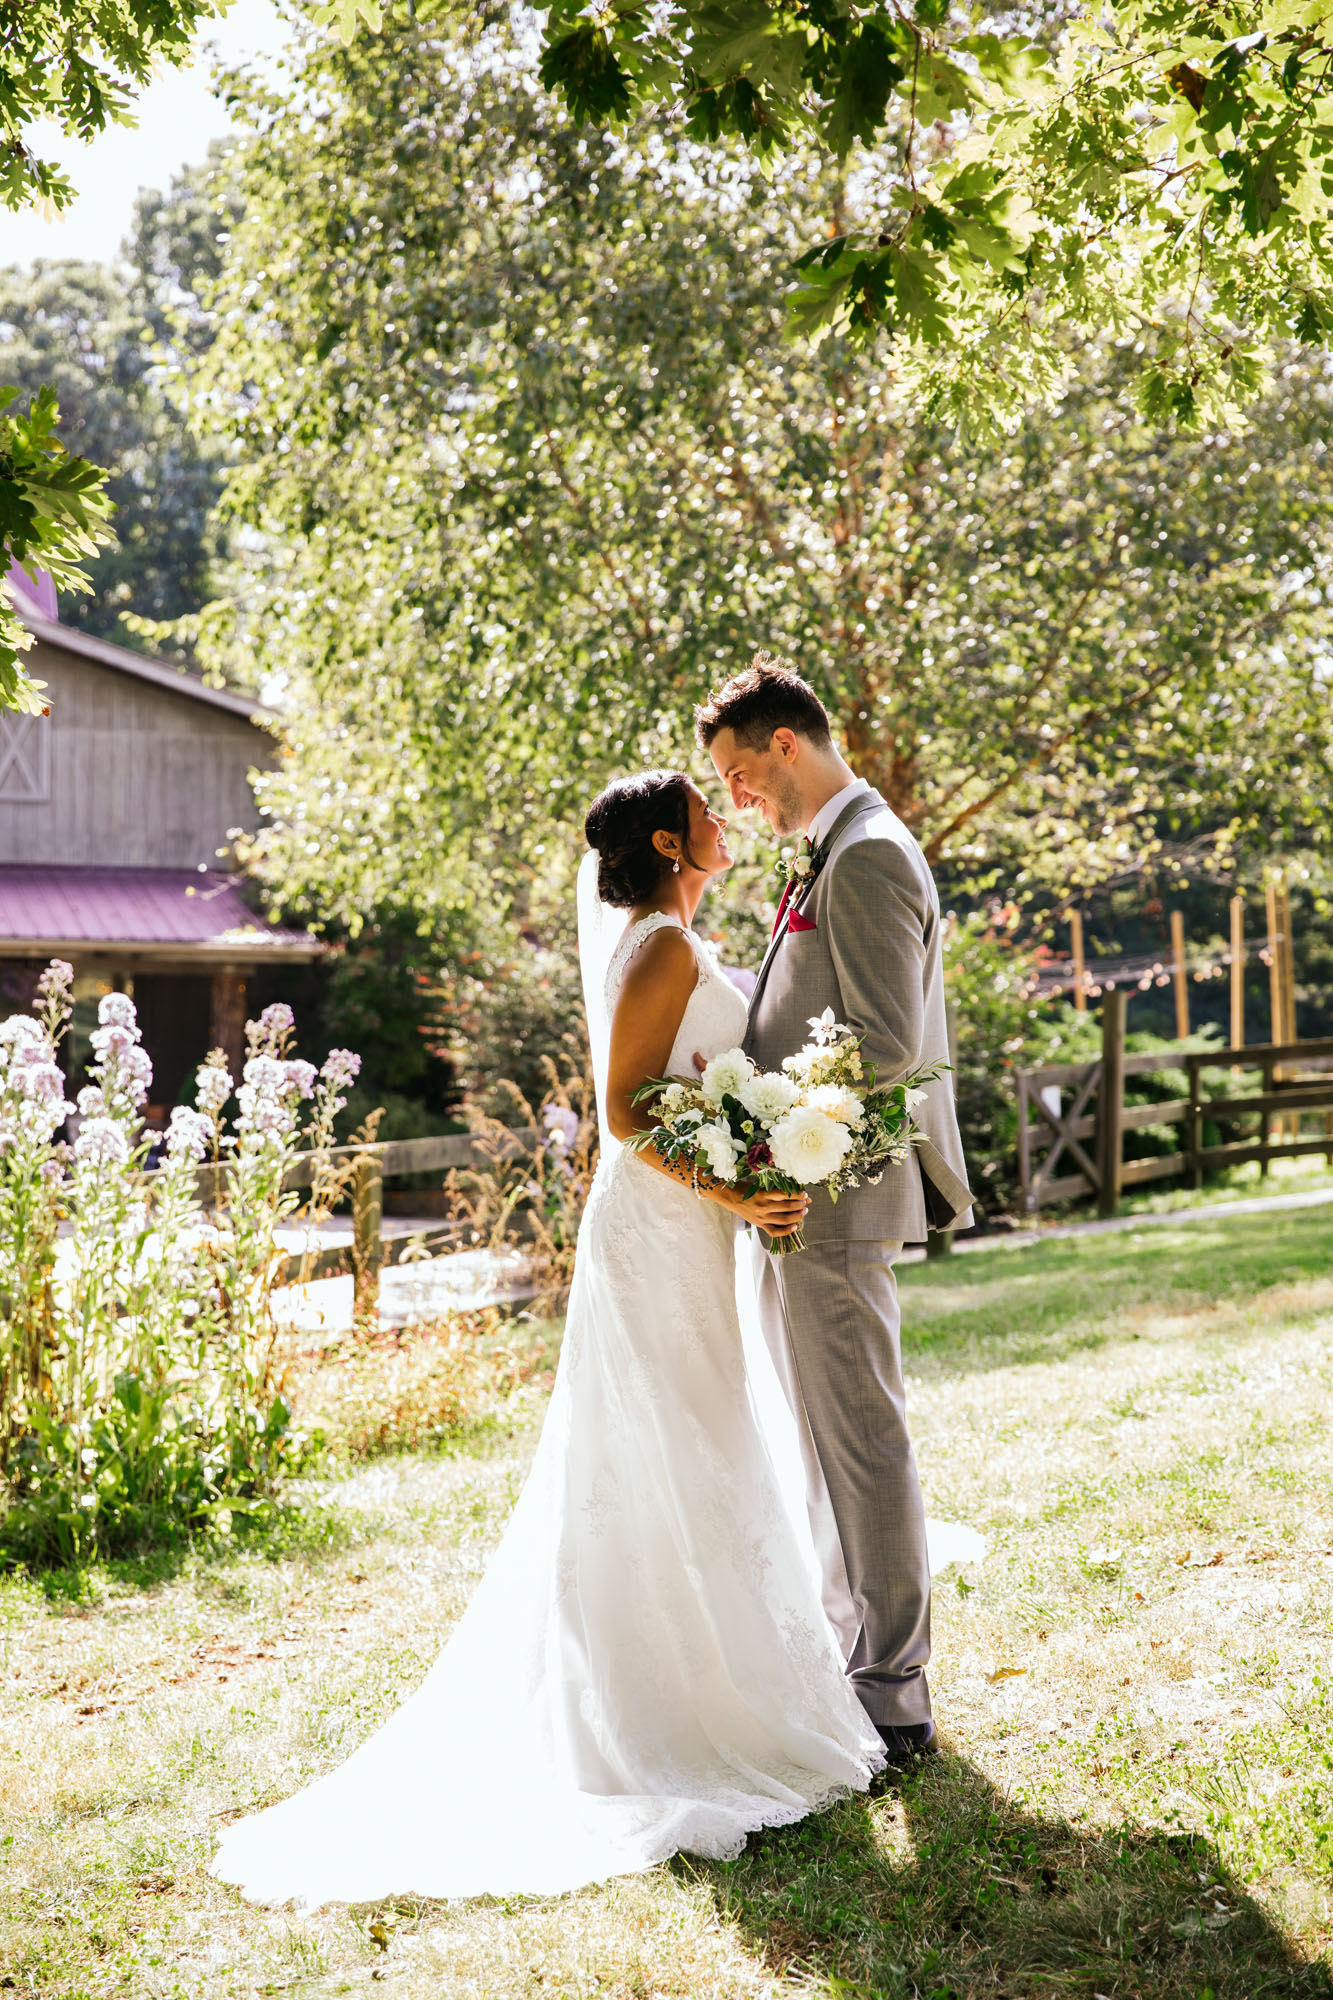 Waynesville NC Wedding Photography | Bride and Groom Sunny Portrait